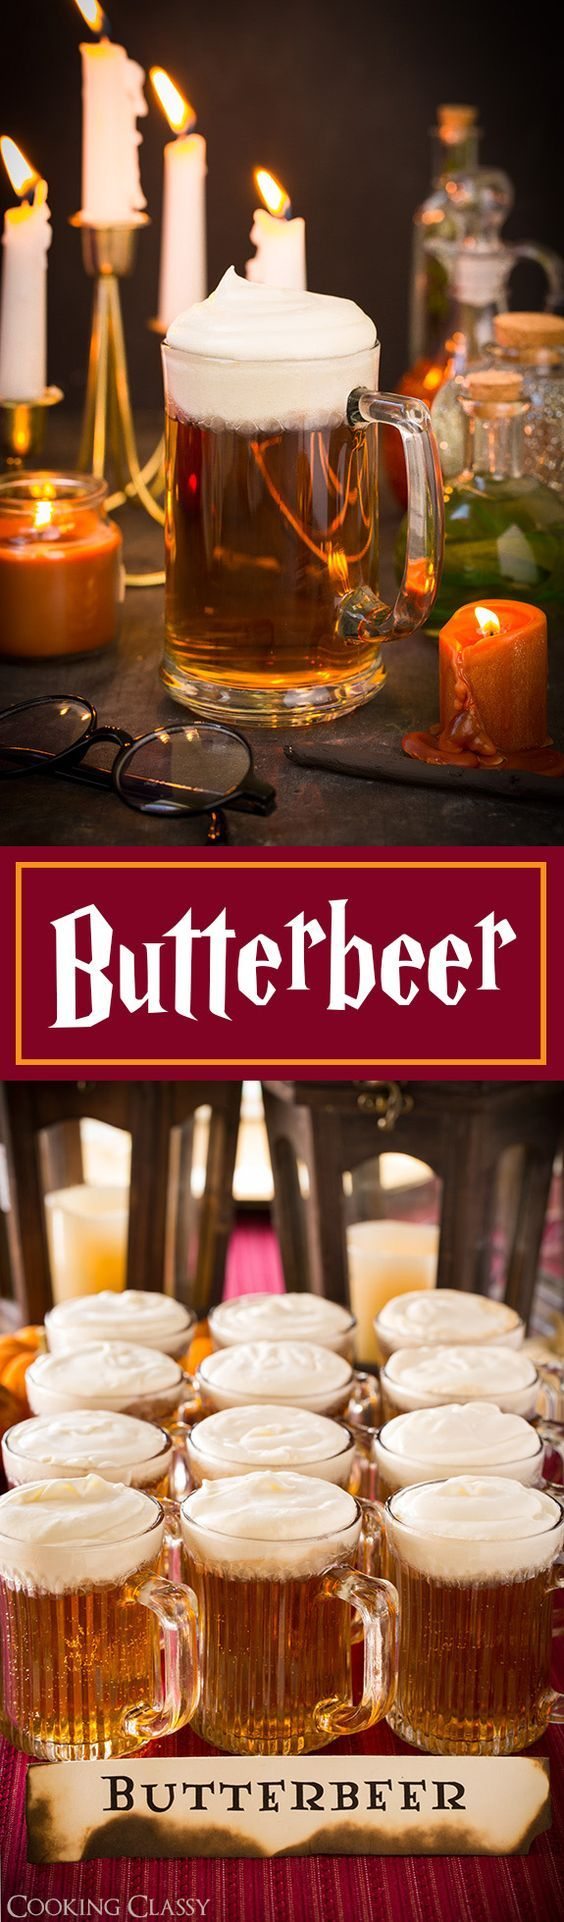 Butterbeer Recipe and a Harry Potter Party - only 5 ingredients and so easy to make! Not so rich, sweet and heavy like some Butterbeer recipes, this one is my favorite!: